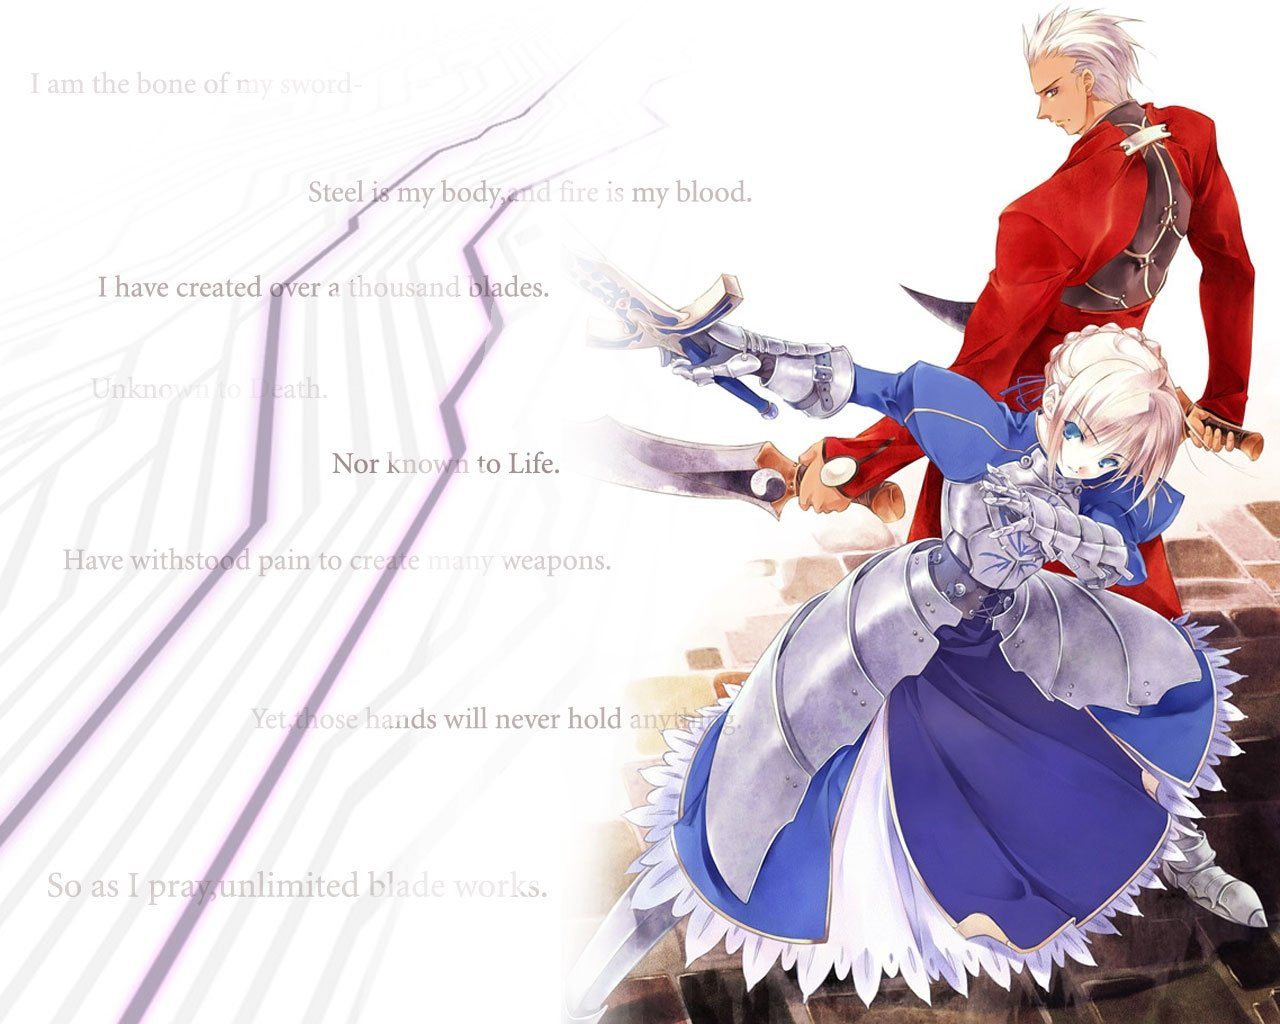 Download hd 1280x1024 Fate/Stay Night: Unlimited Blade Works PC background ID:291062 for free